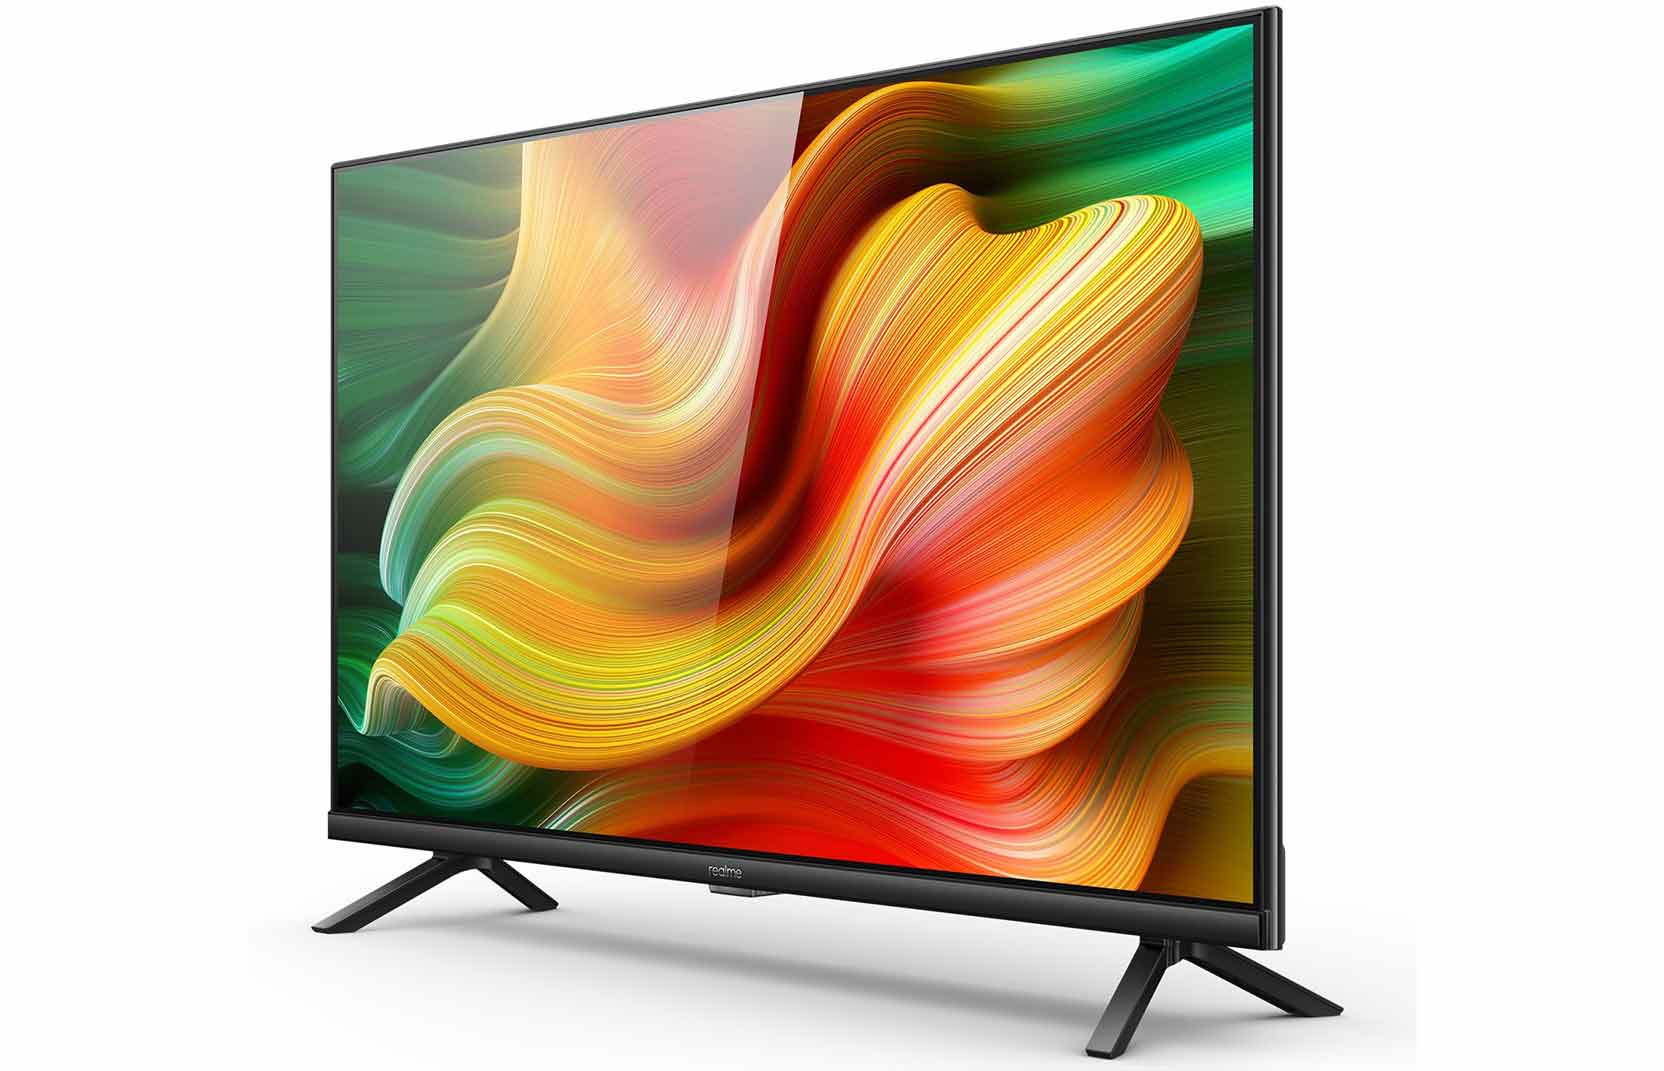 Realme 43 inch HD Ready Smart Android LED TV